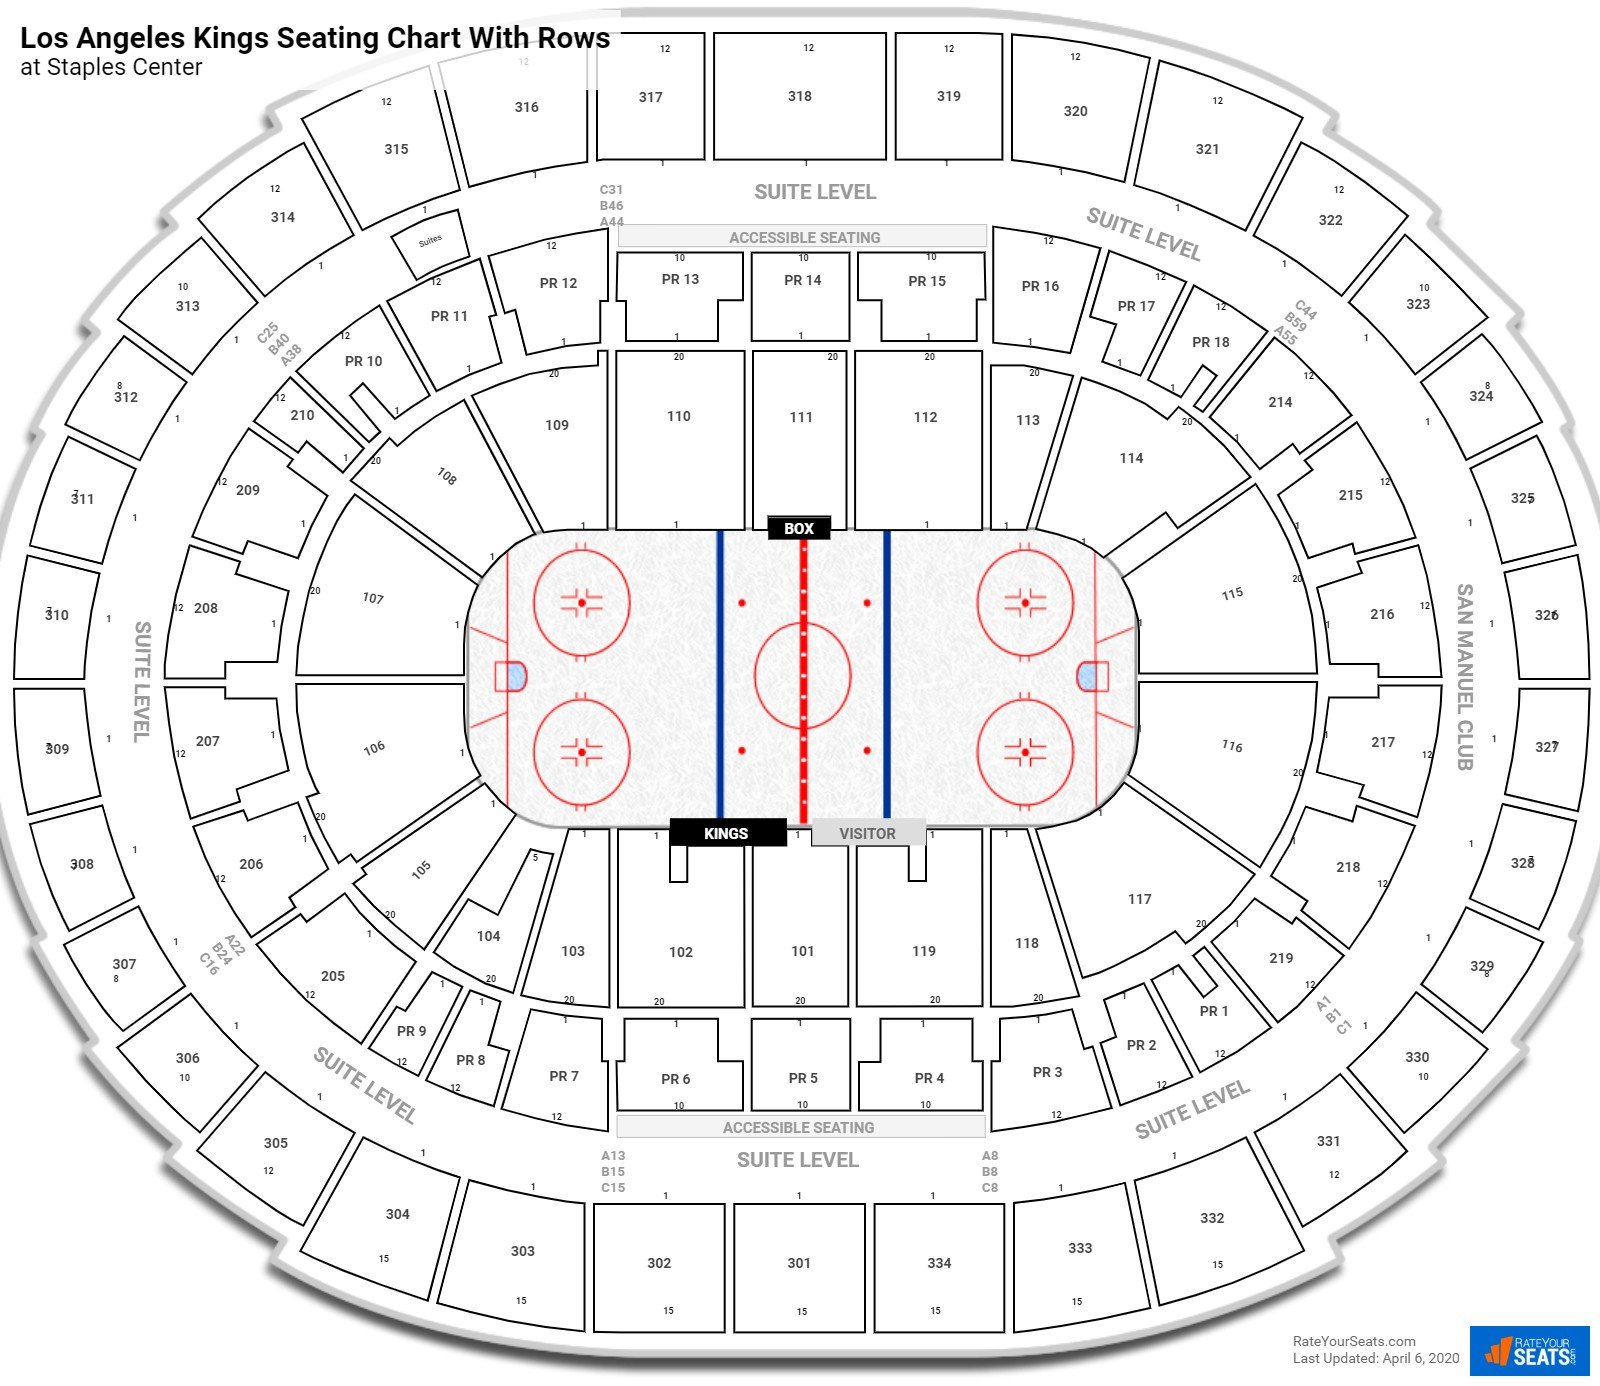 Staples Center seating chart with rows hockey